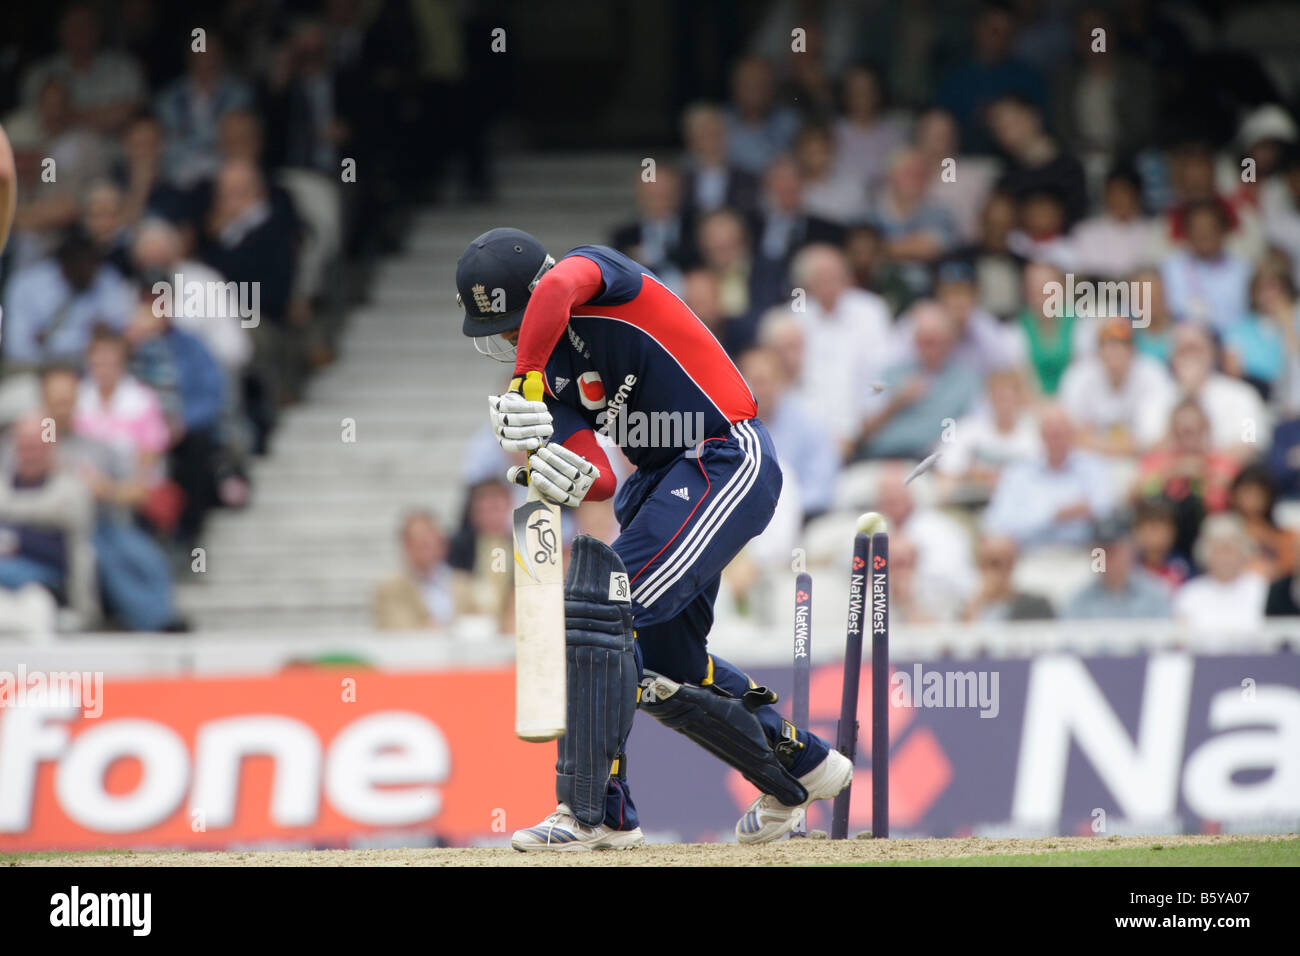 bowled out stumps one day cricket england v australia dejected loser lost failure - Stock Image